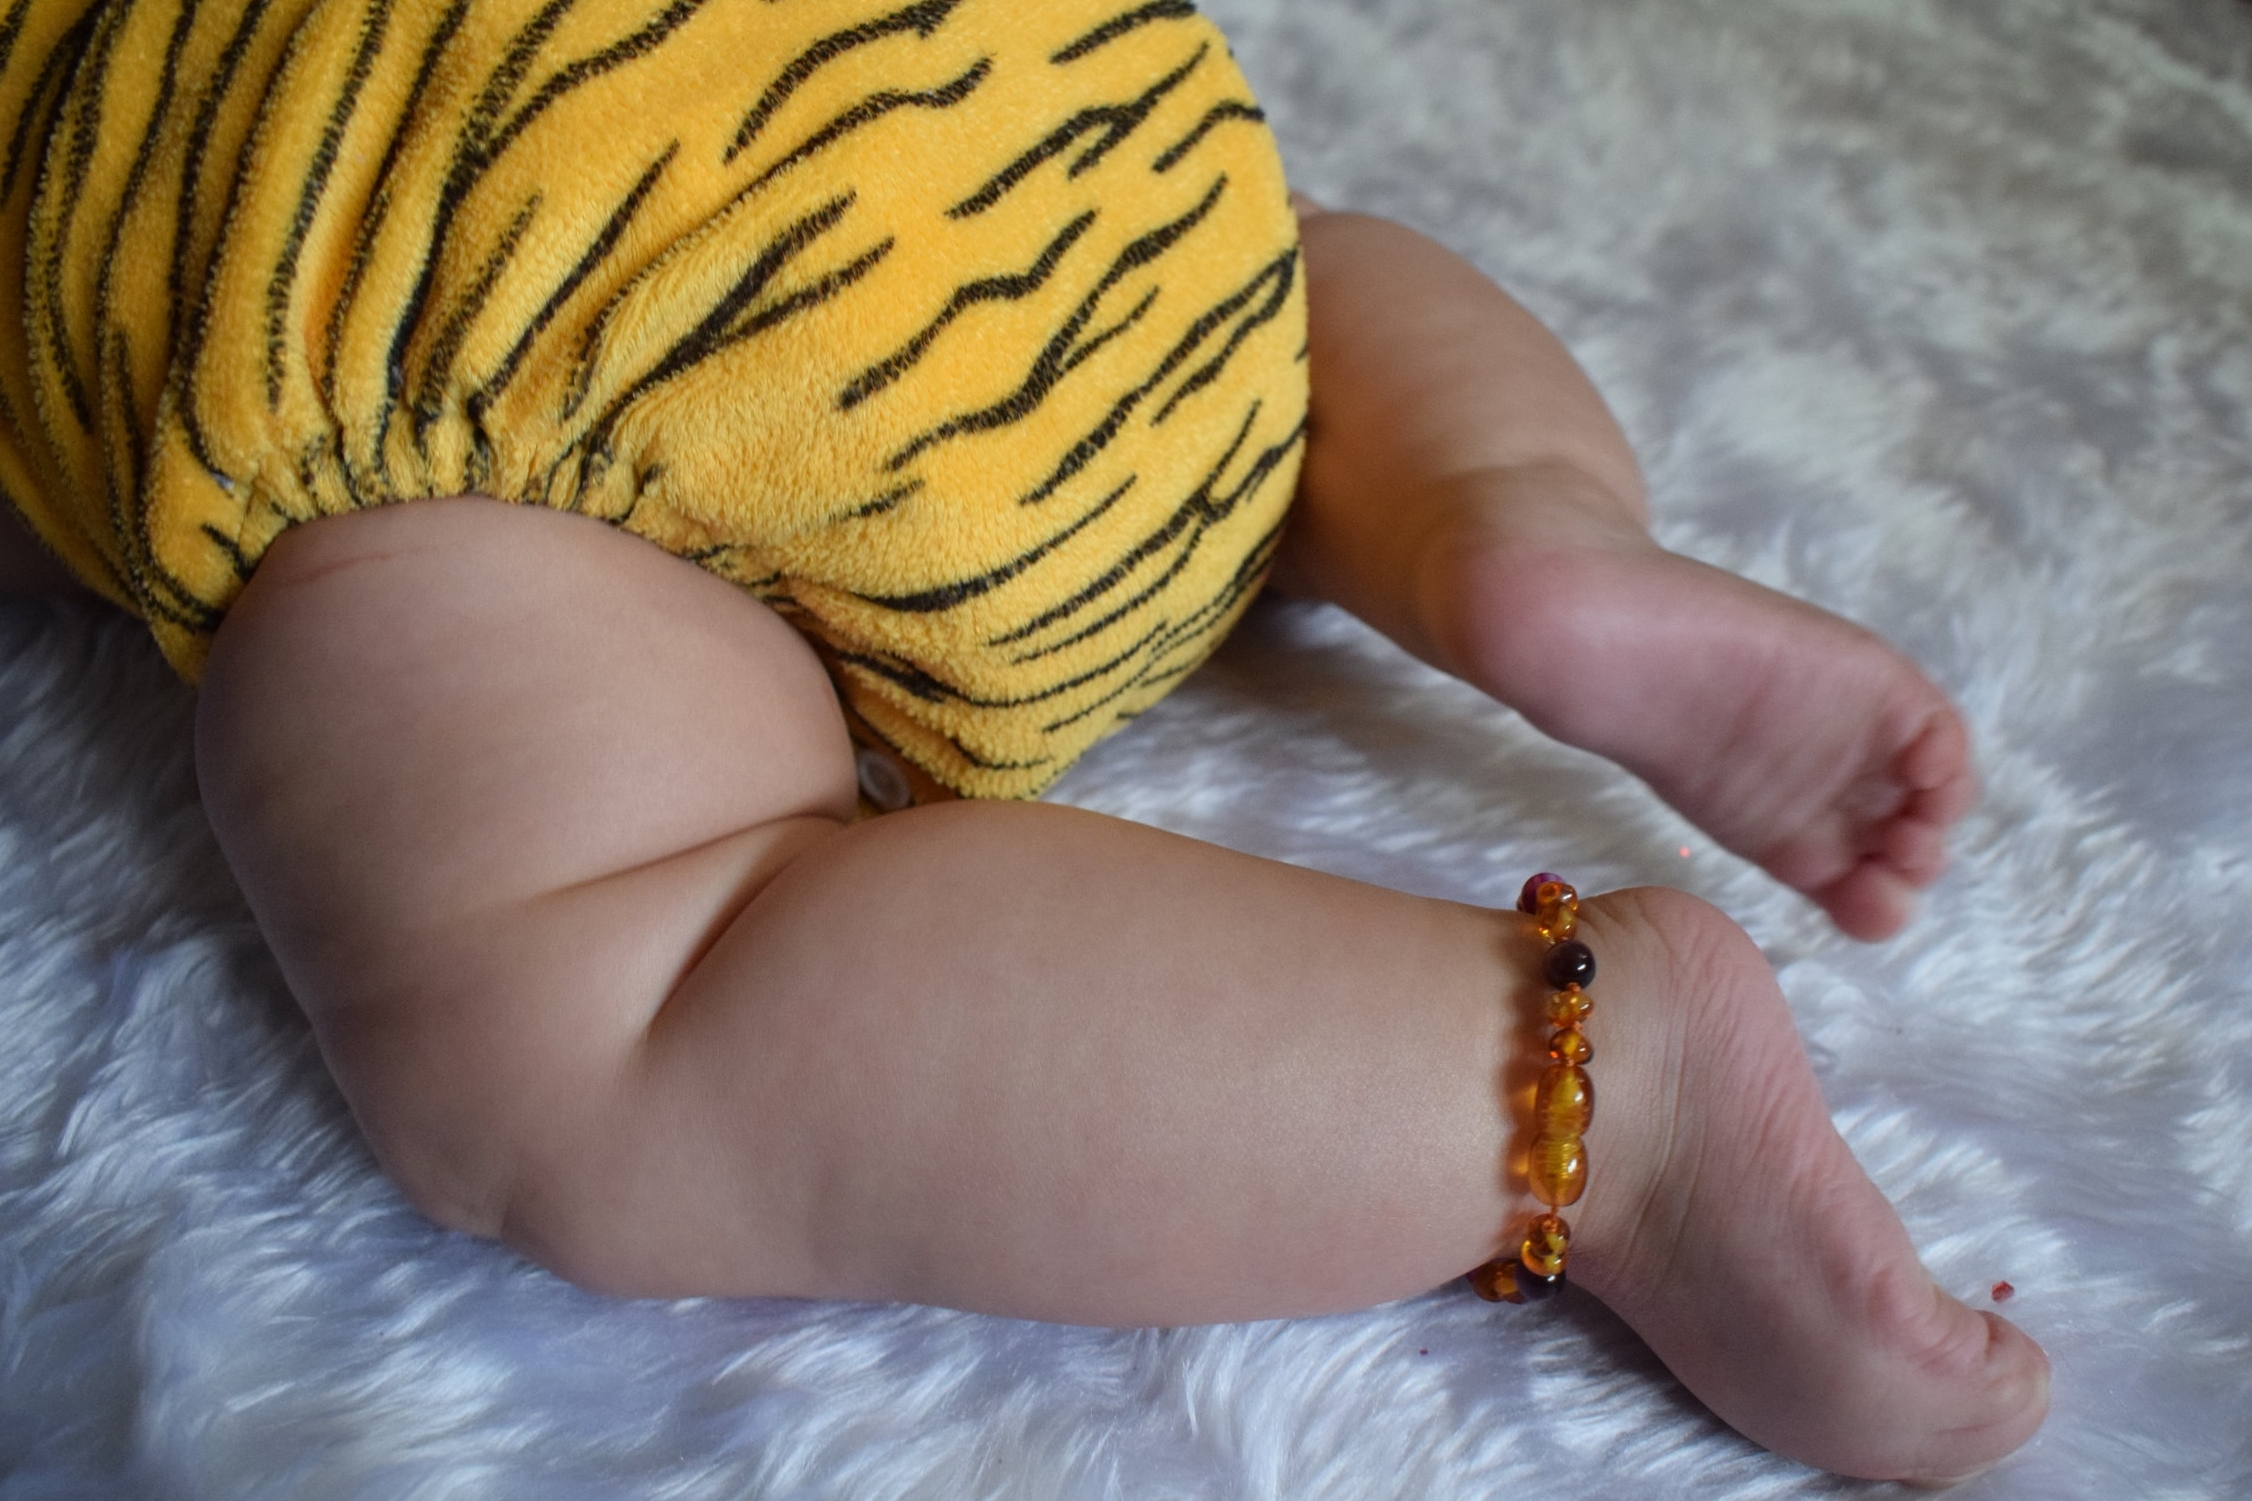 Cloth nappy and amber teething anklet